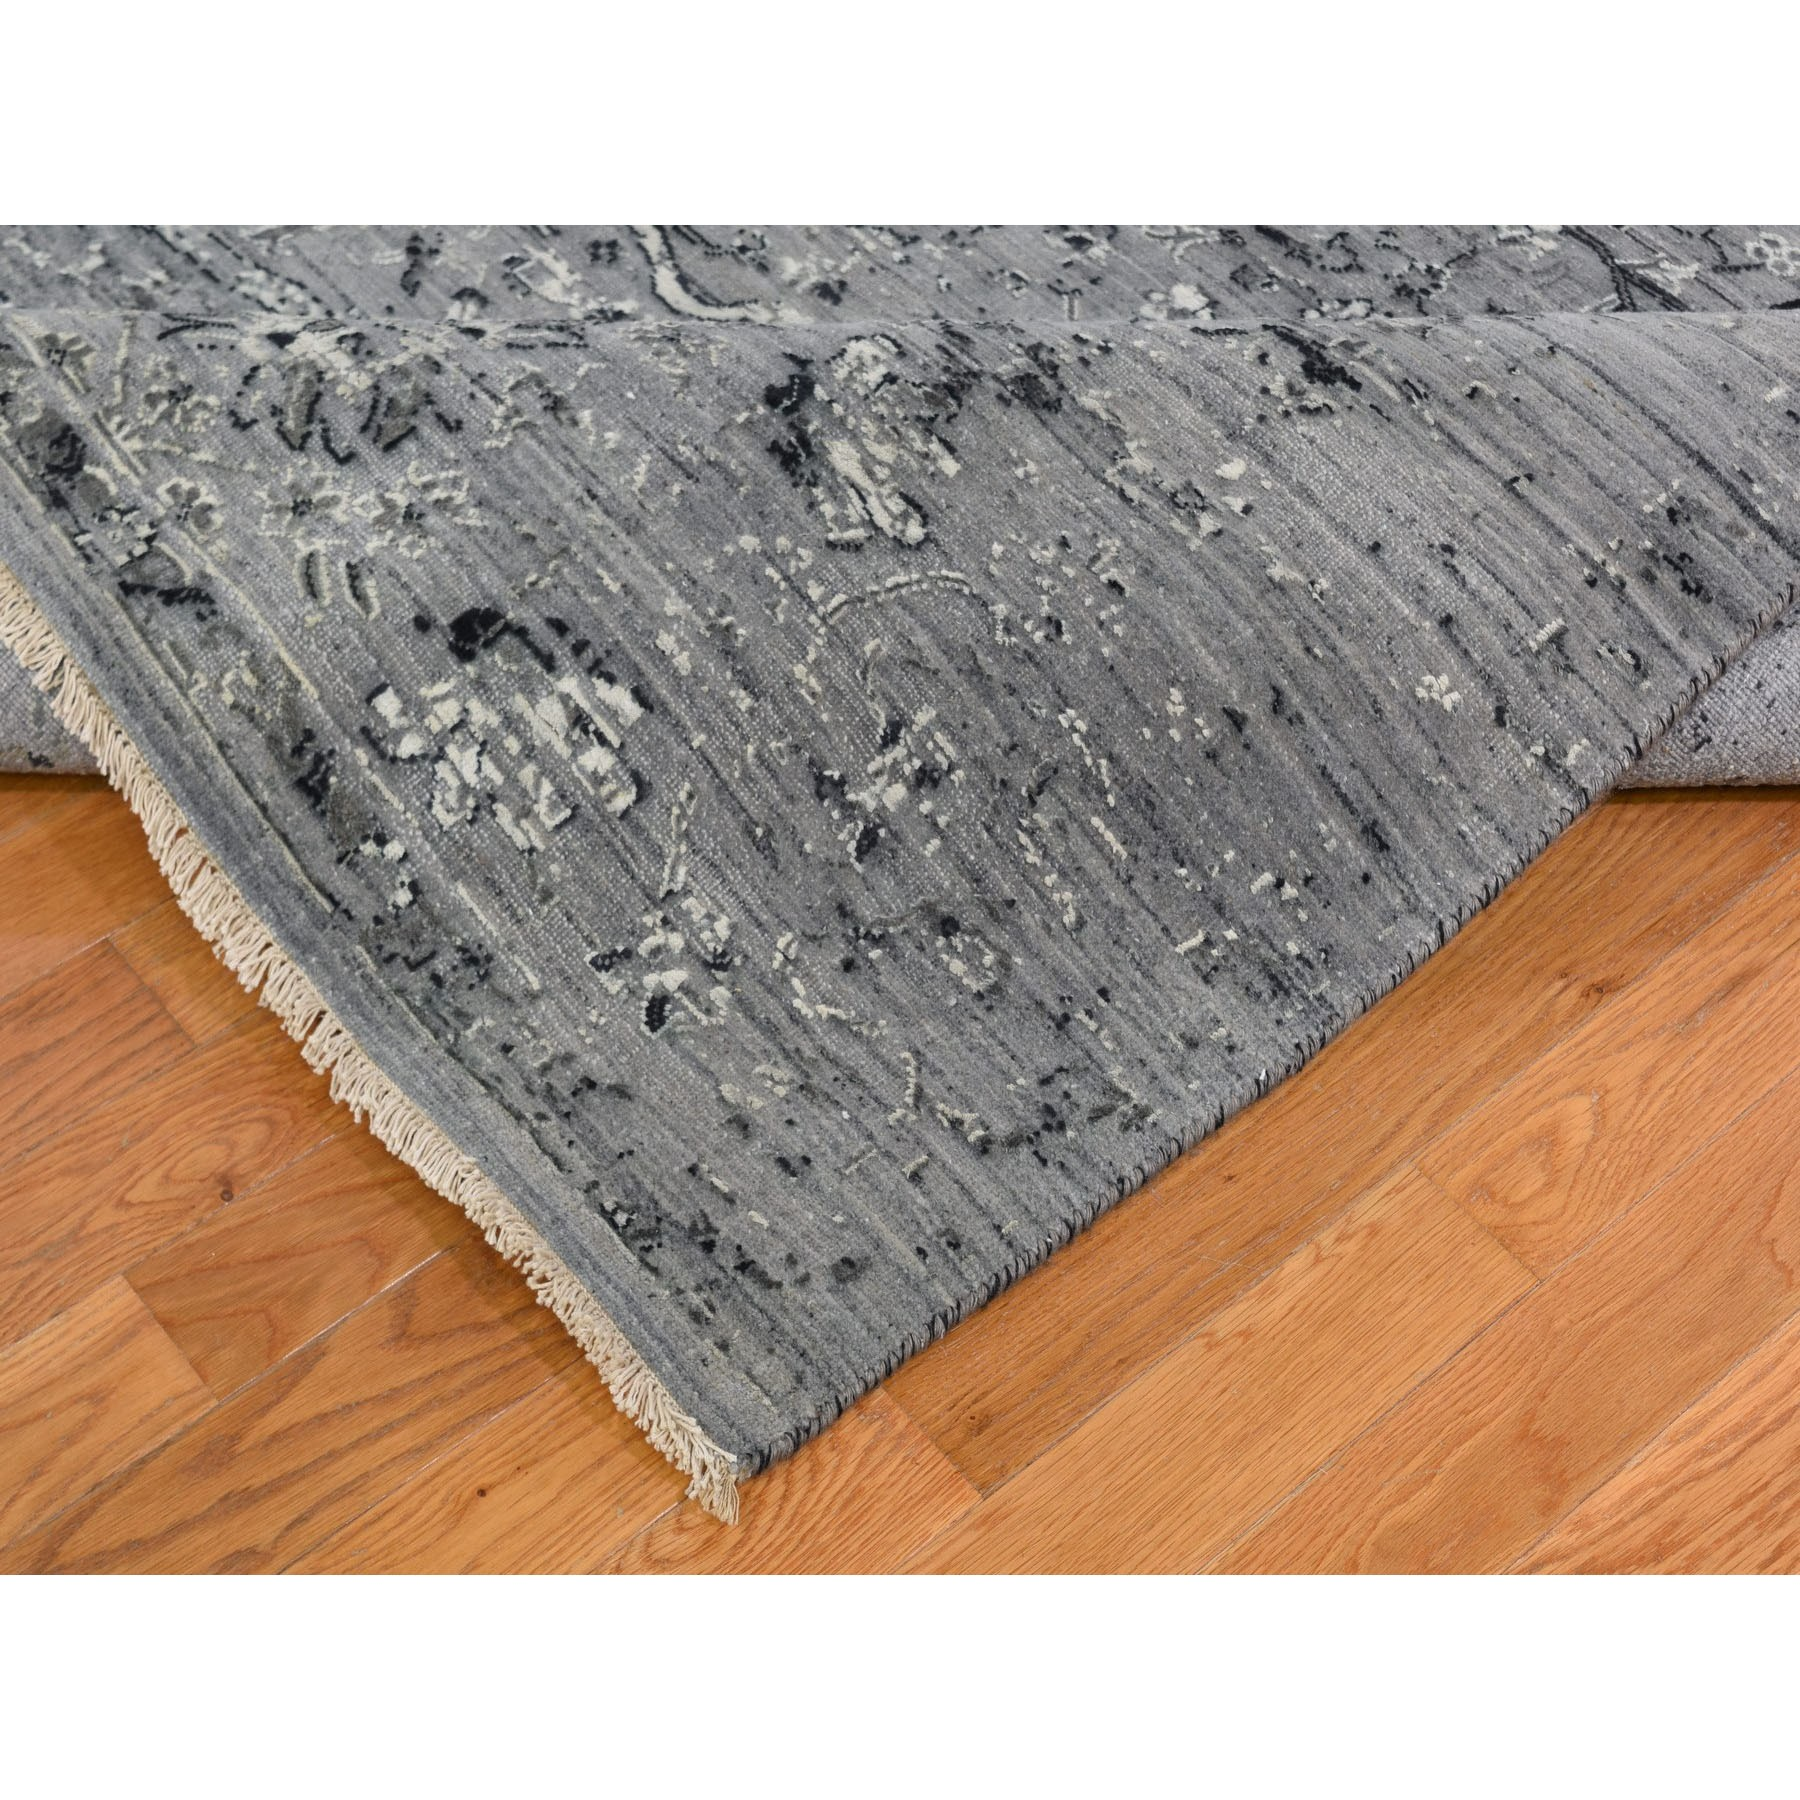 10-x10- Square Gray Broken Persian Erased Design Pure Silk With Textured Wool Hand Knotted Oriental Rug